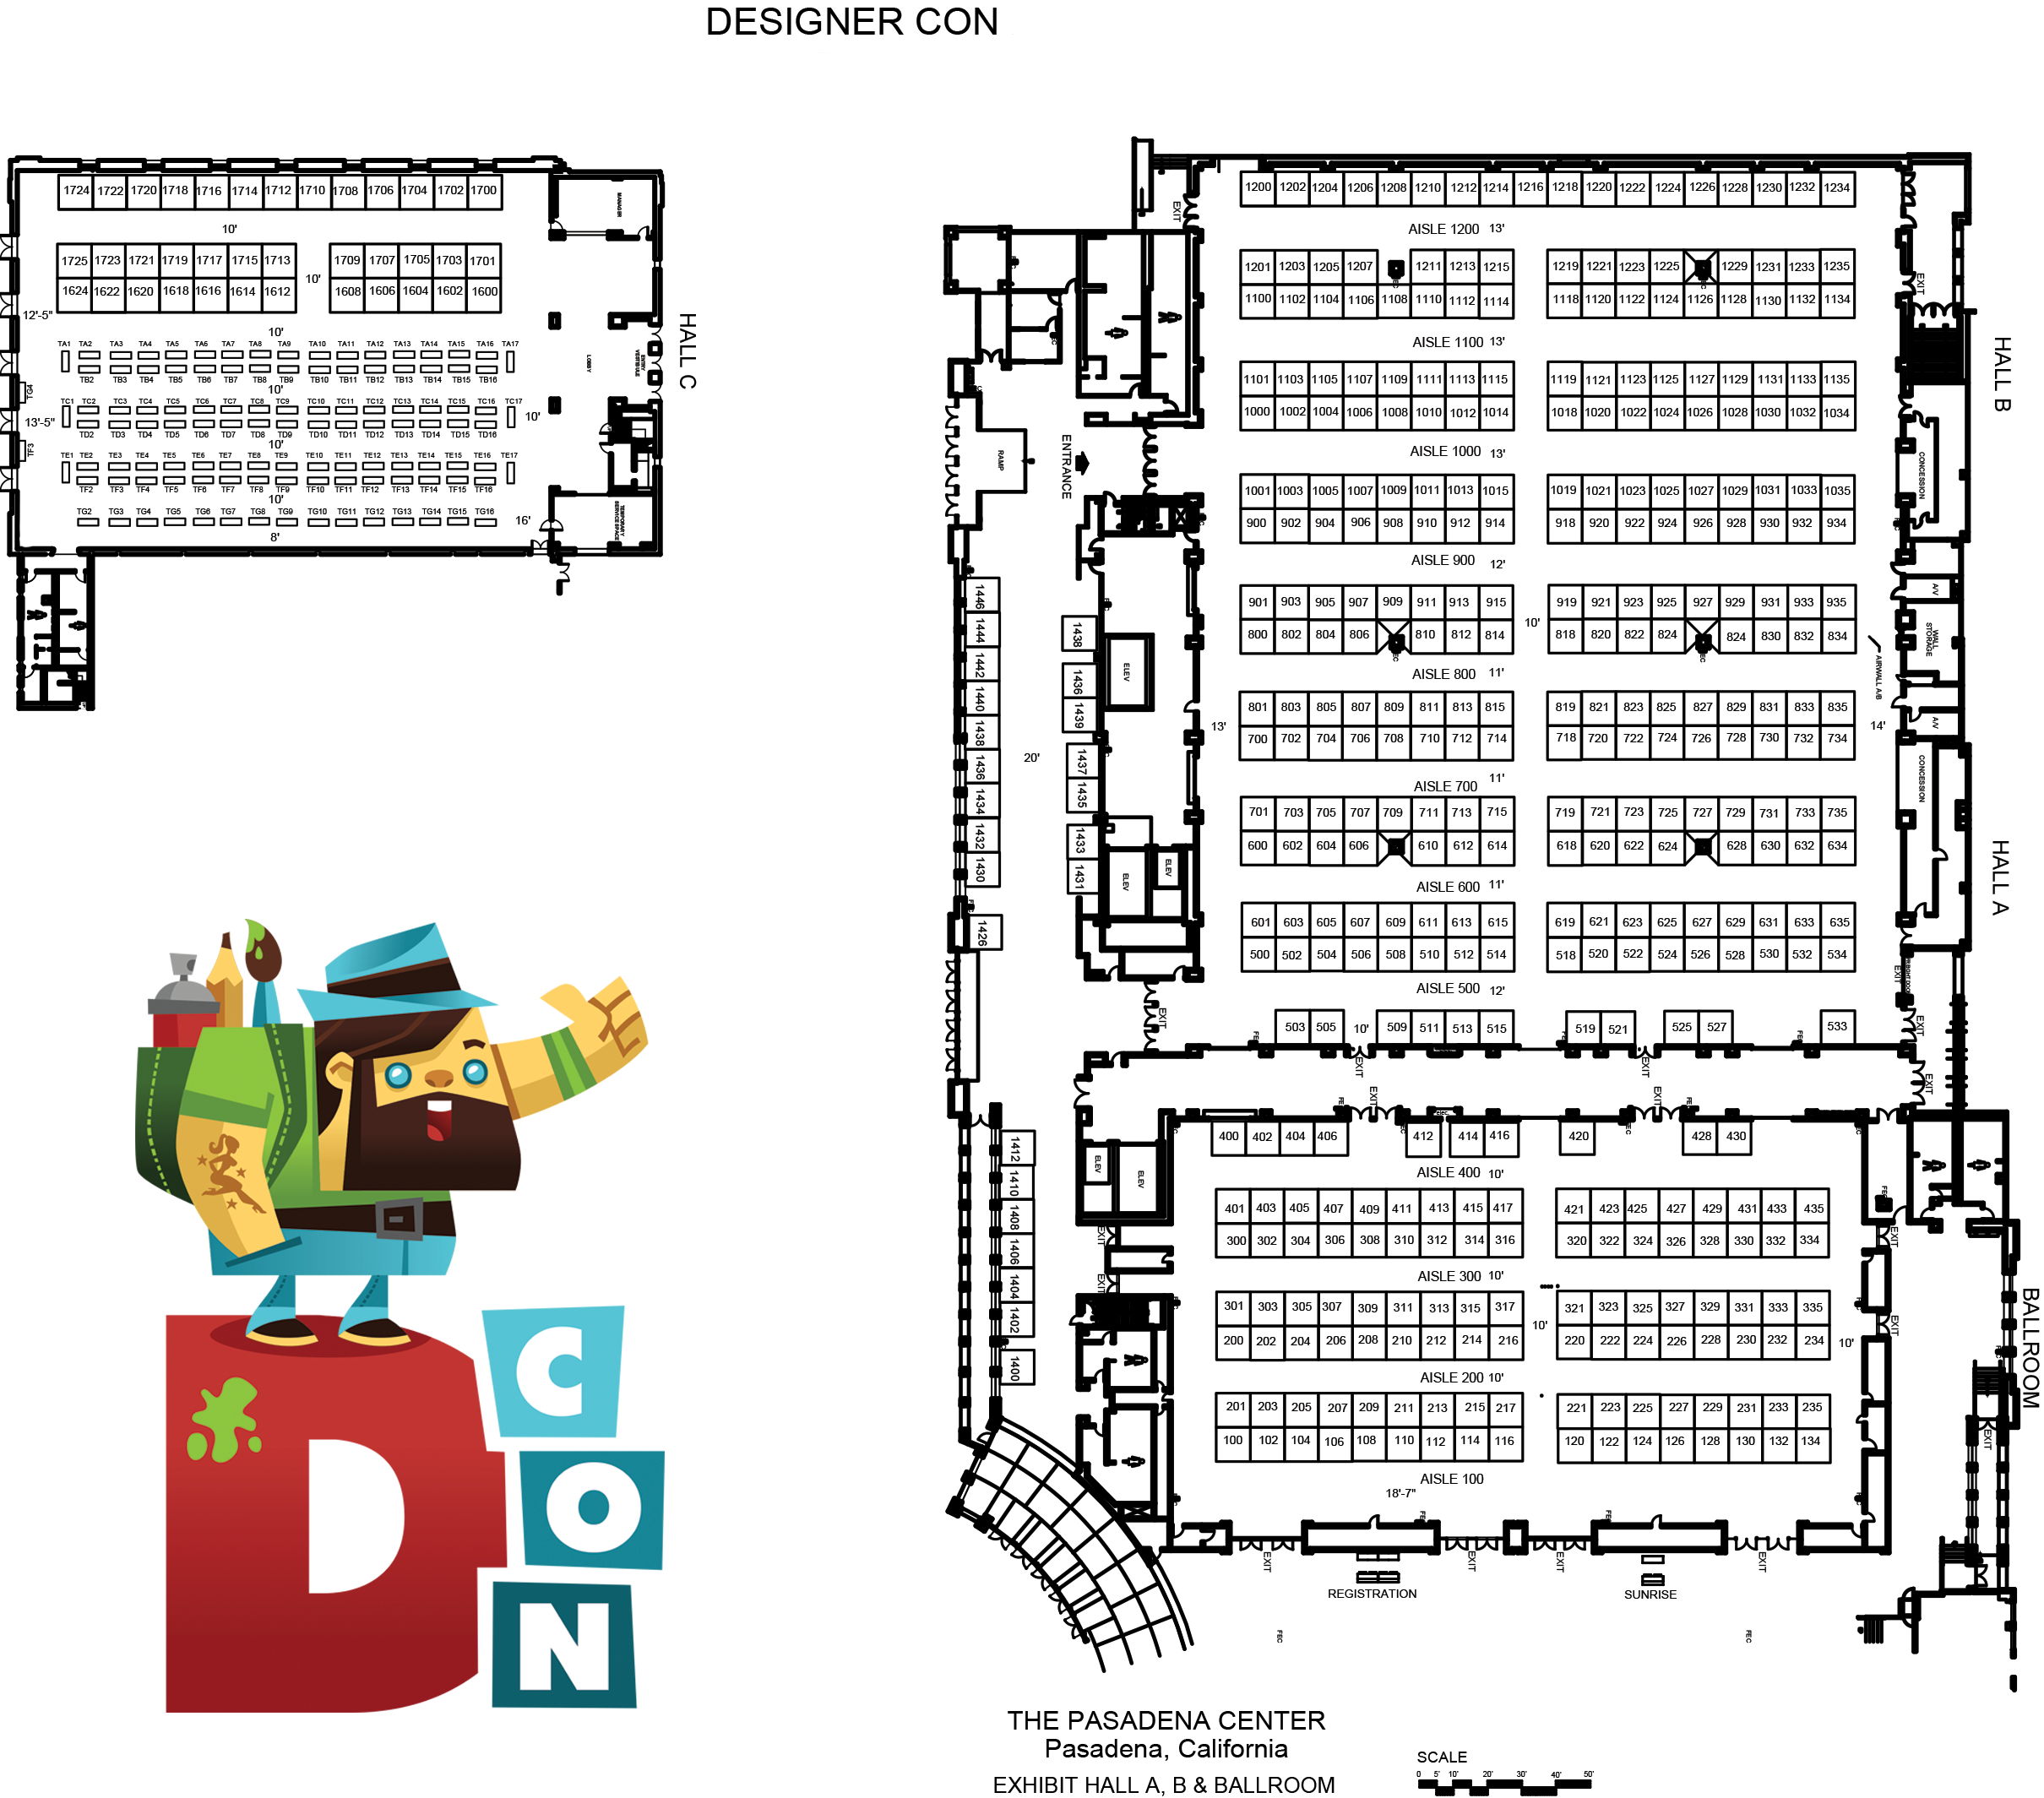 http://www.designercon.com/wp-content/uploads/2015/12/map_dcon17.png